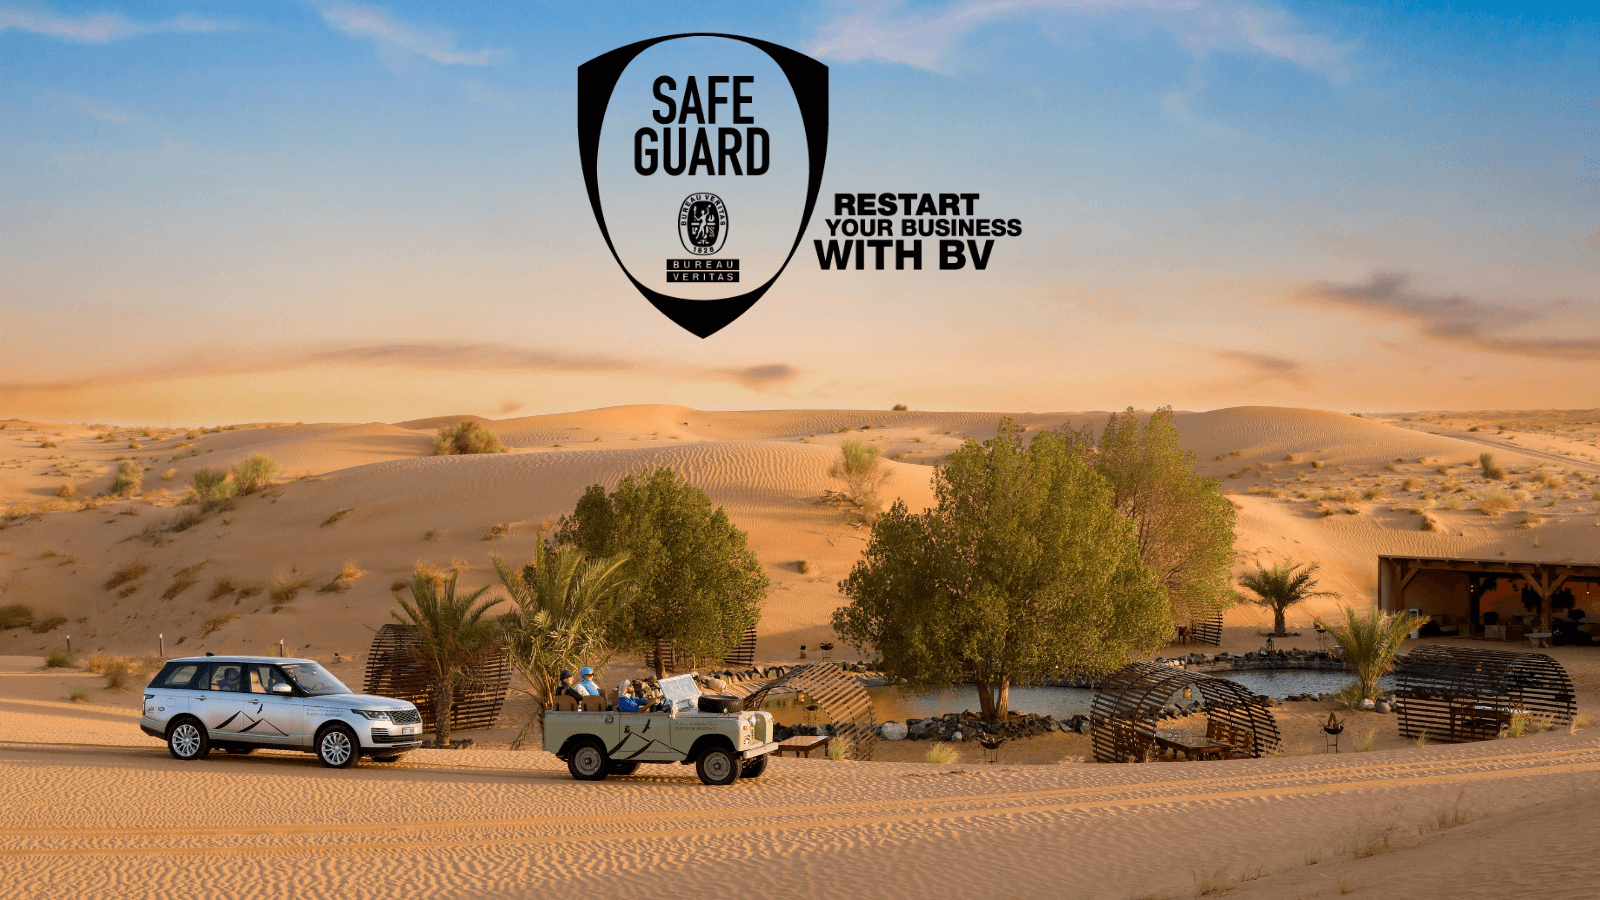 First Desert Safari Company in the World Certified with Bureau Veritas' Safety Label: Platinum Heritage Dubai